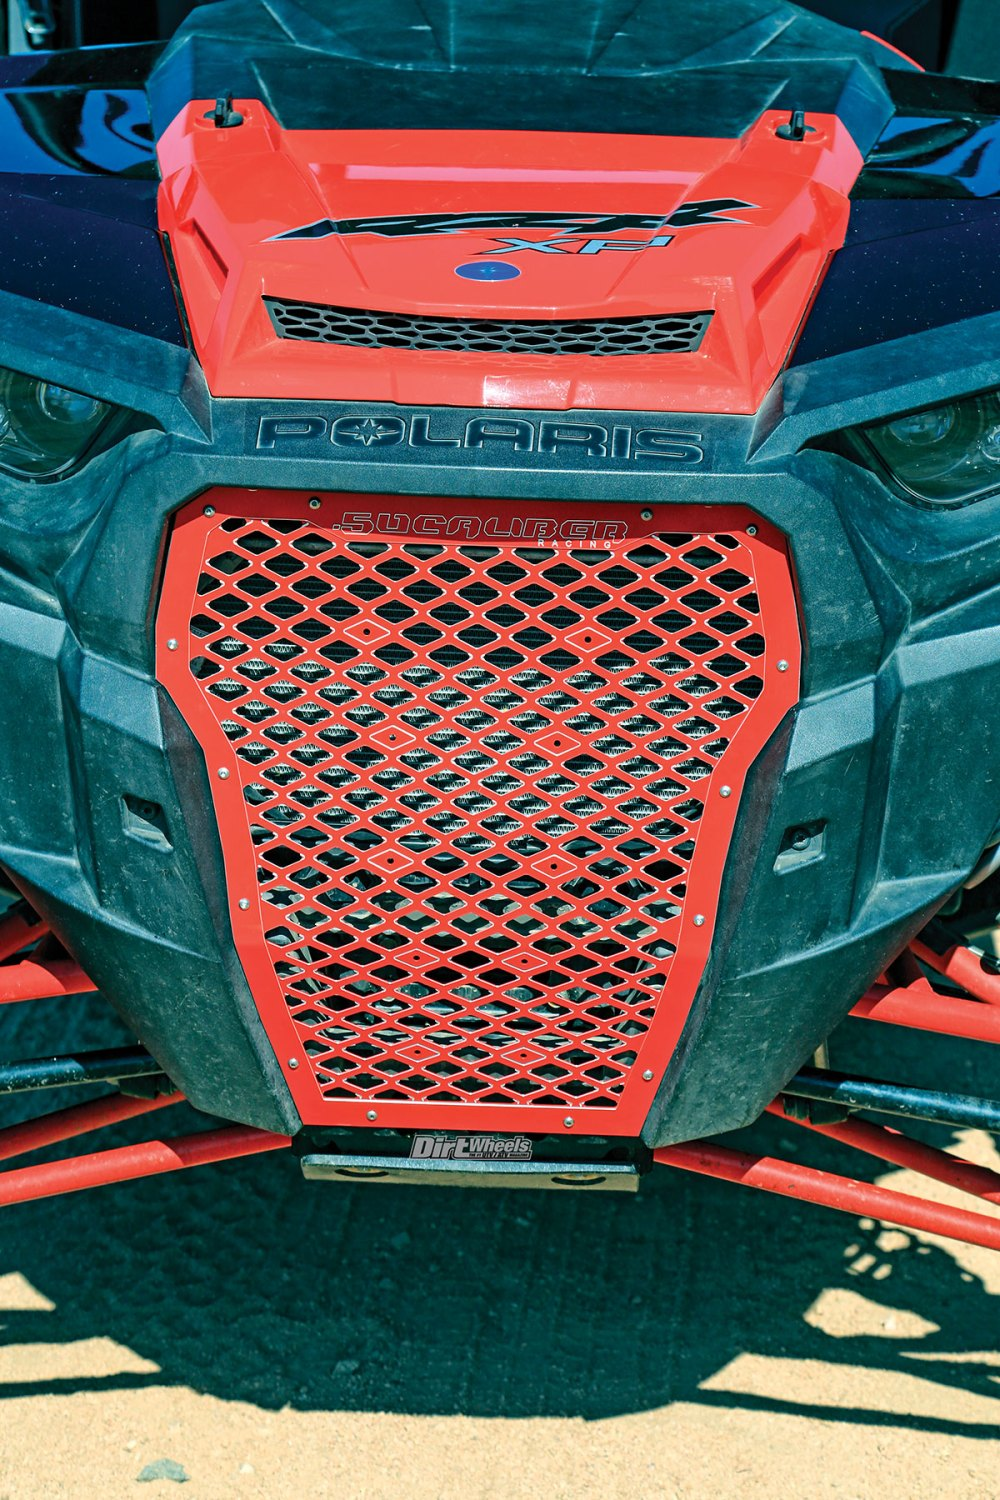 medium resolution of 50 caliber racing s billet grill insert for late model polaris rzr turbos adds a very unique look to the machine it is available in five colors